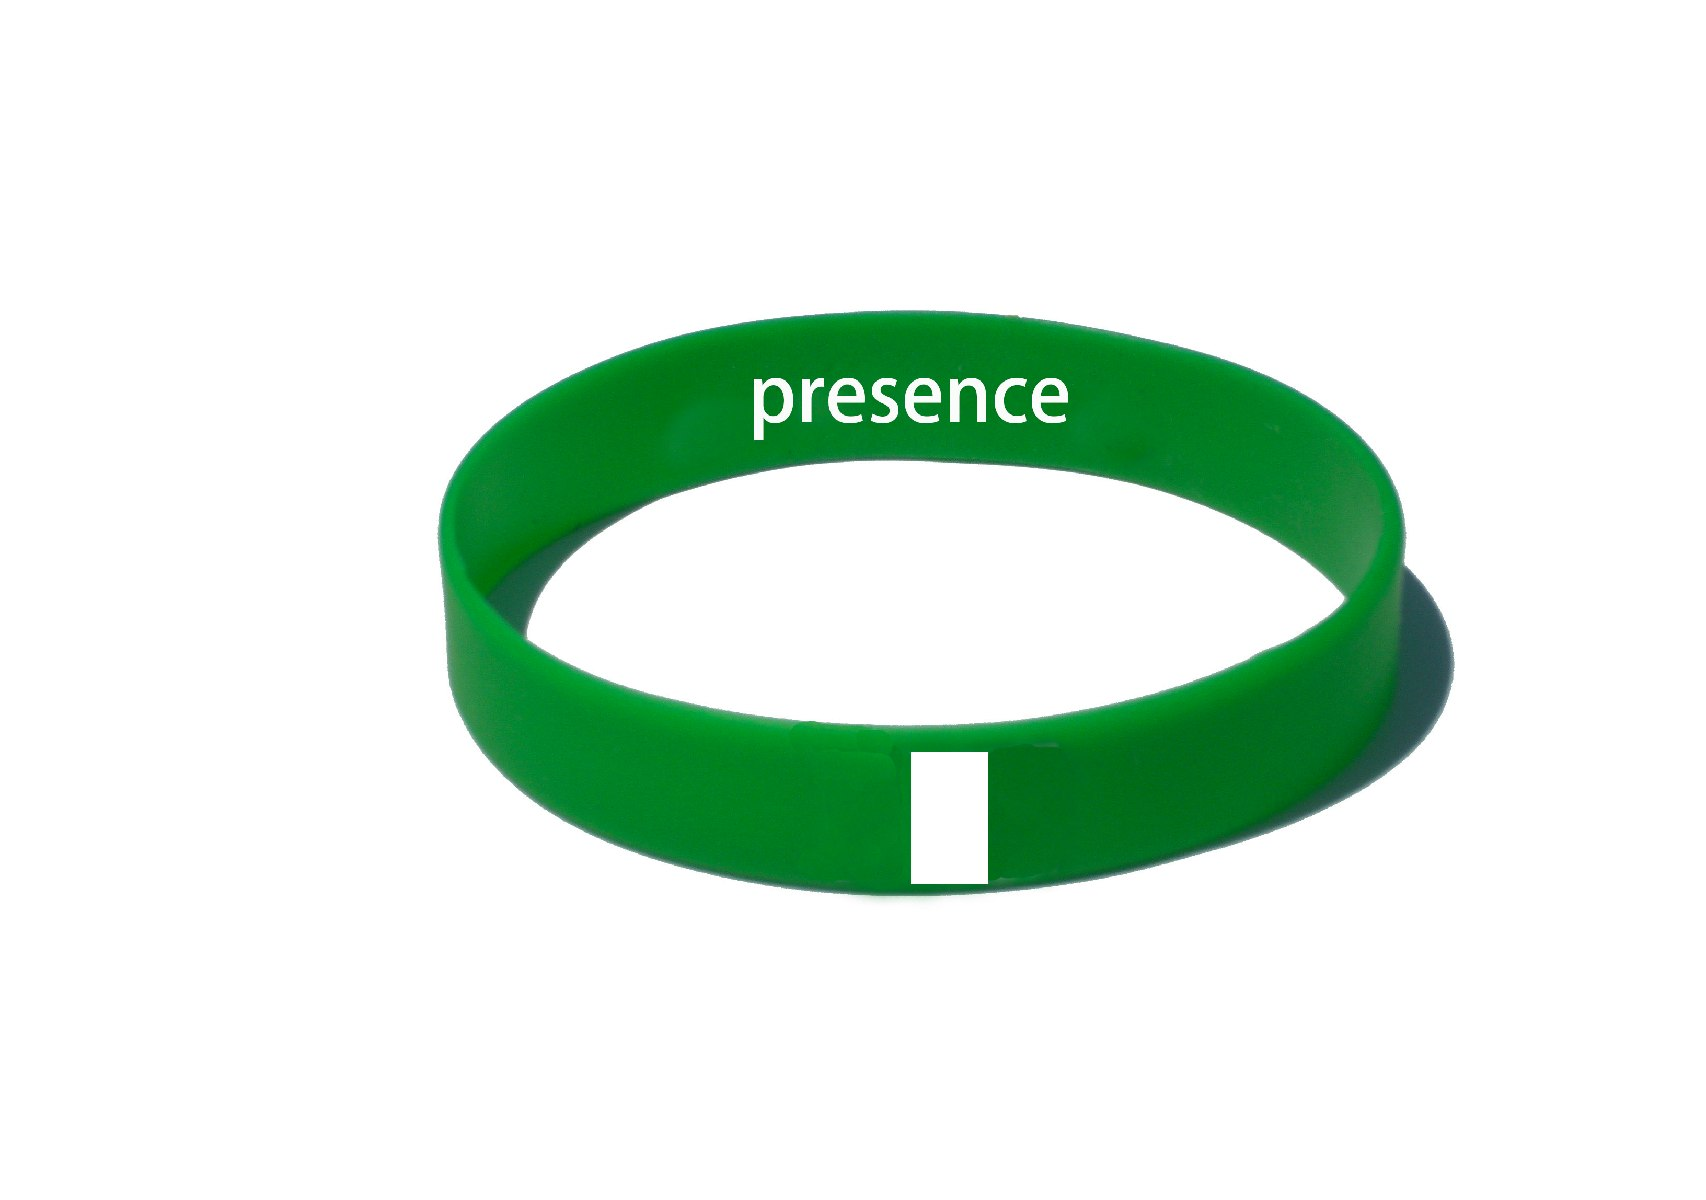 The Presence Band